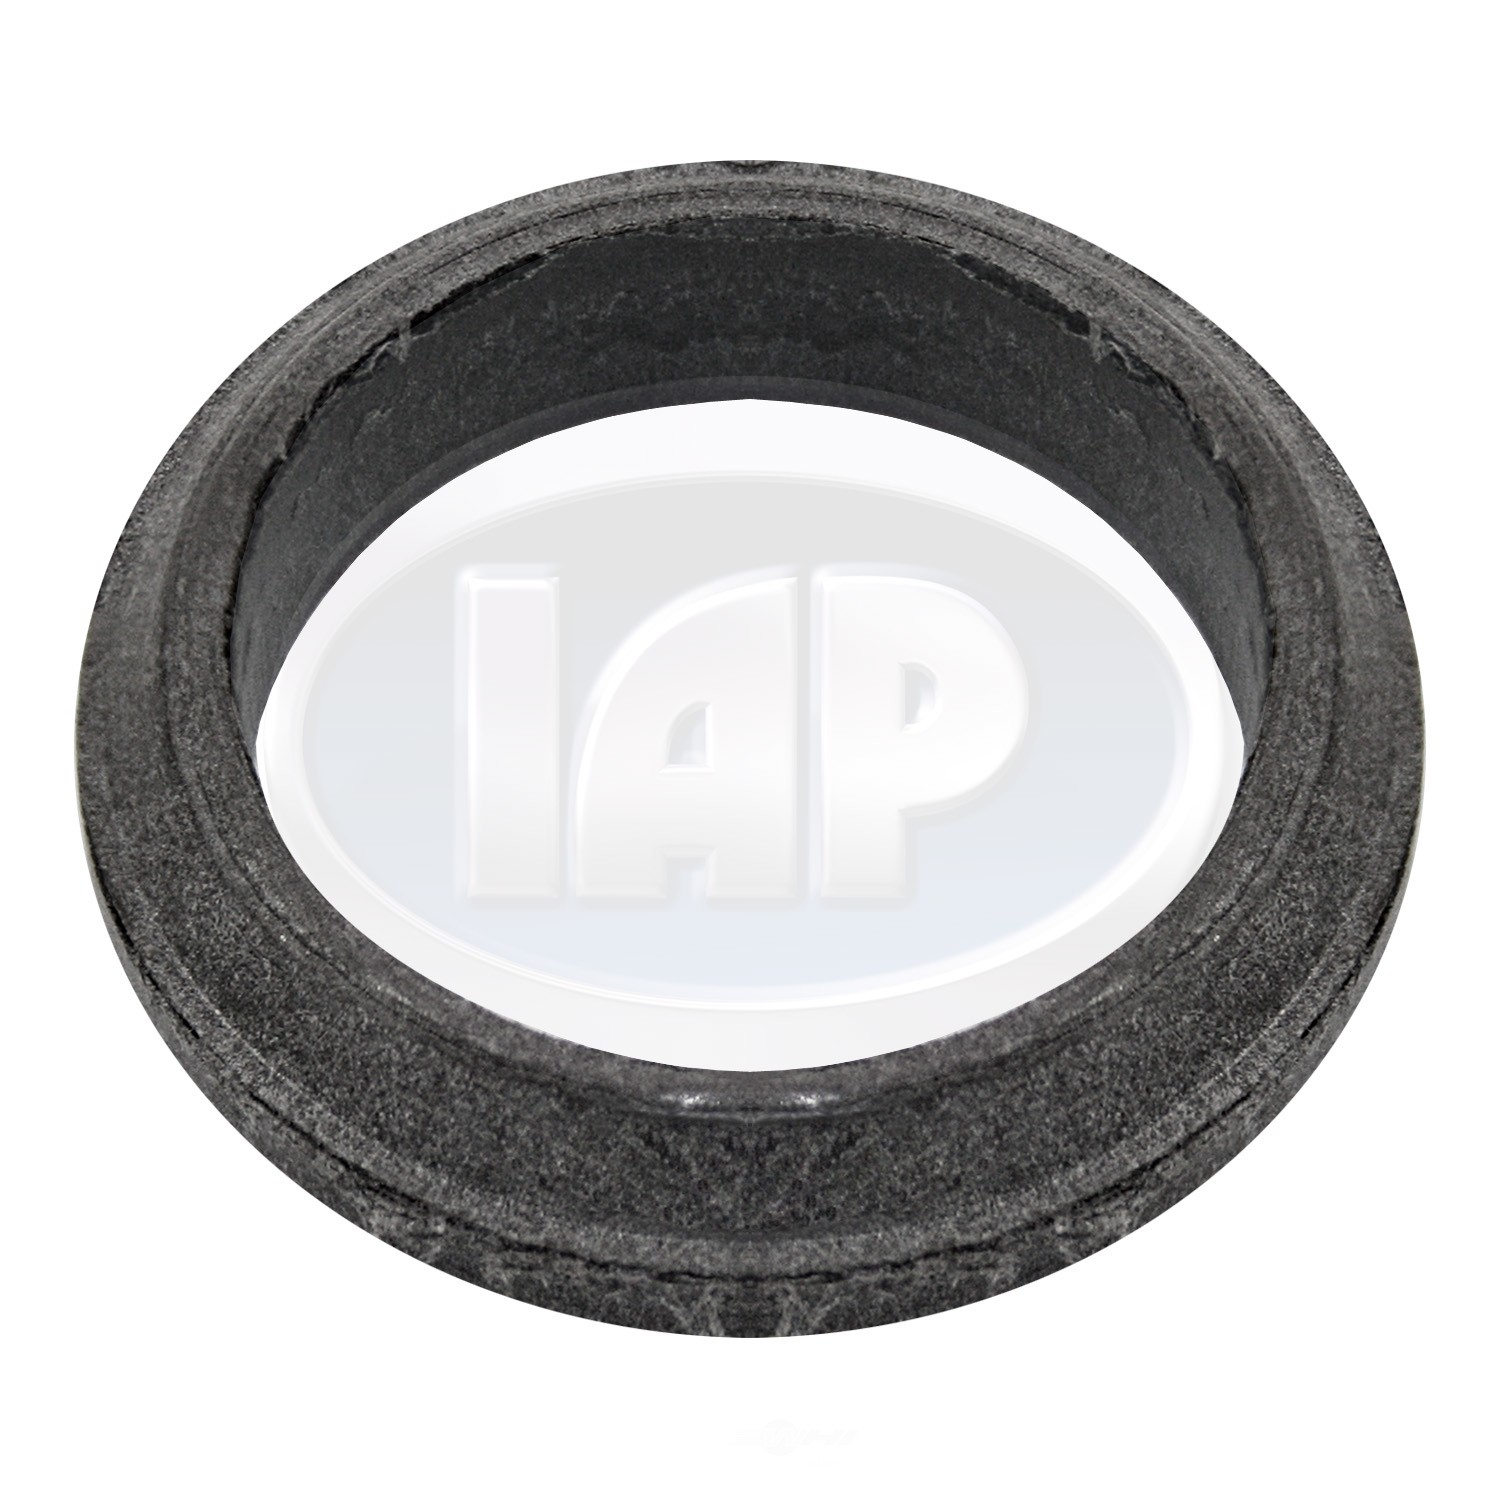 IAP/KUHLTEK MOTORWERKS - Exhaust Seal Ring - KMS 111251241A